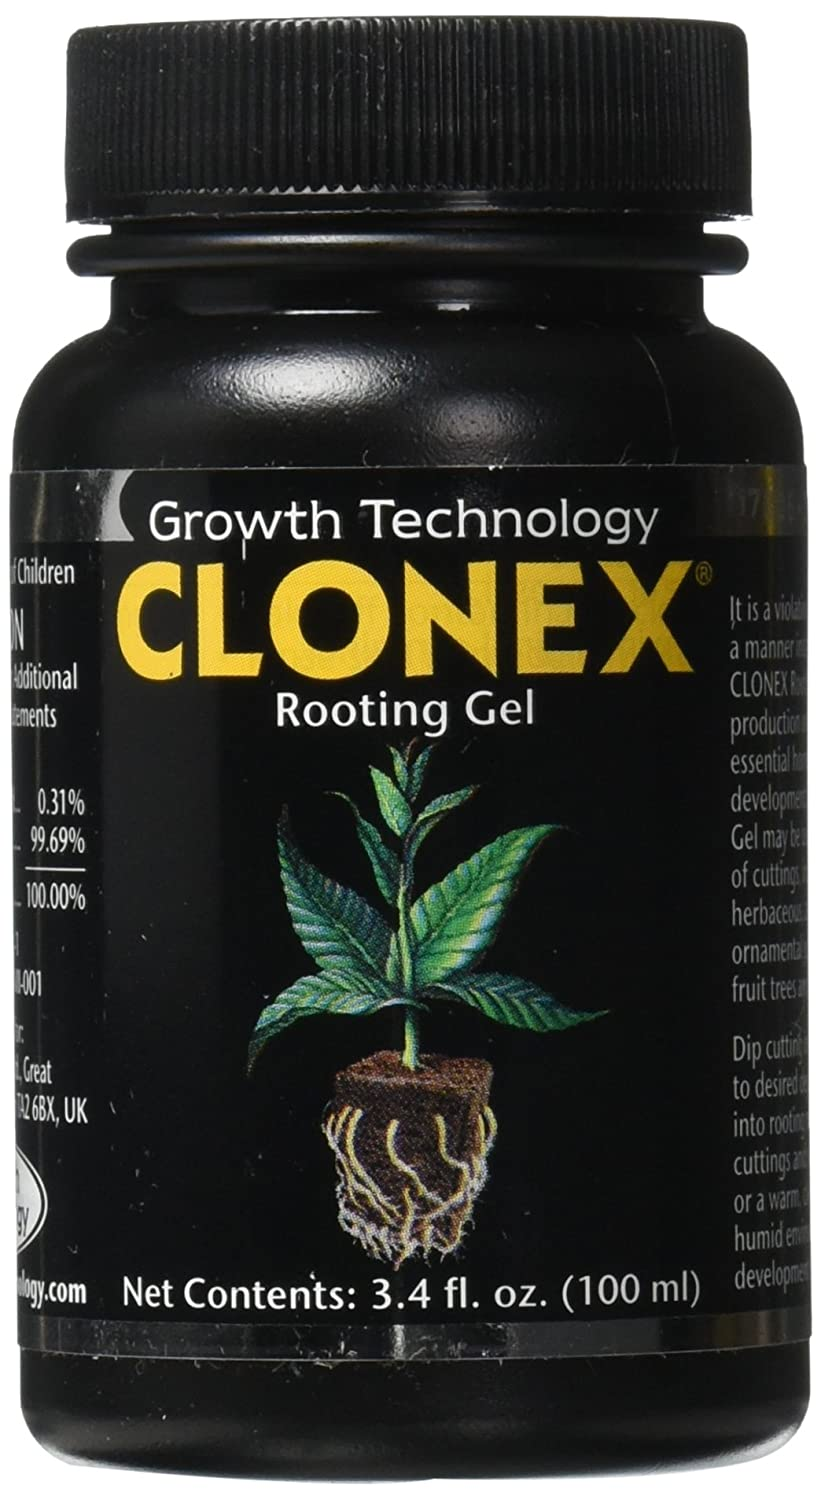 We promote the rapid rooting and growth of plants